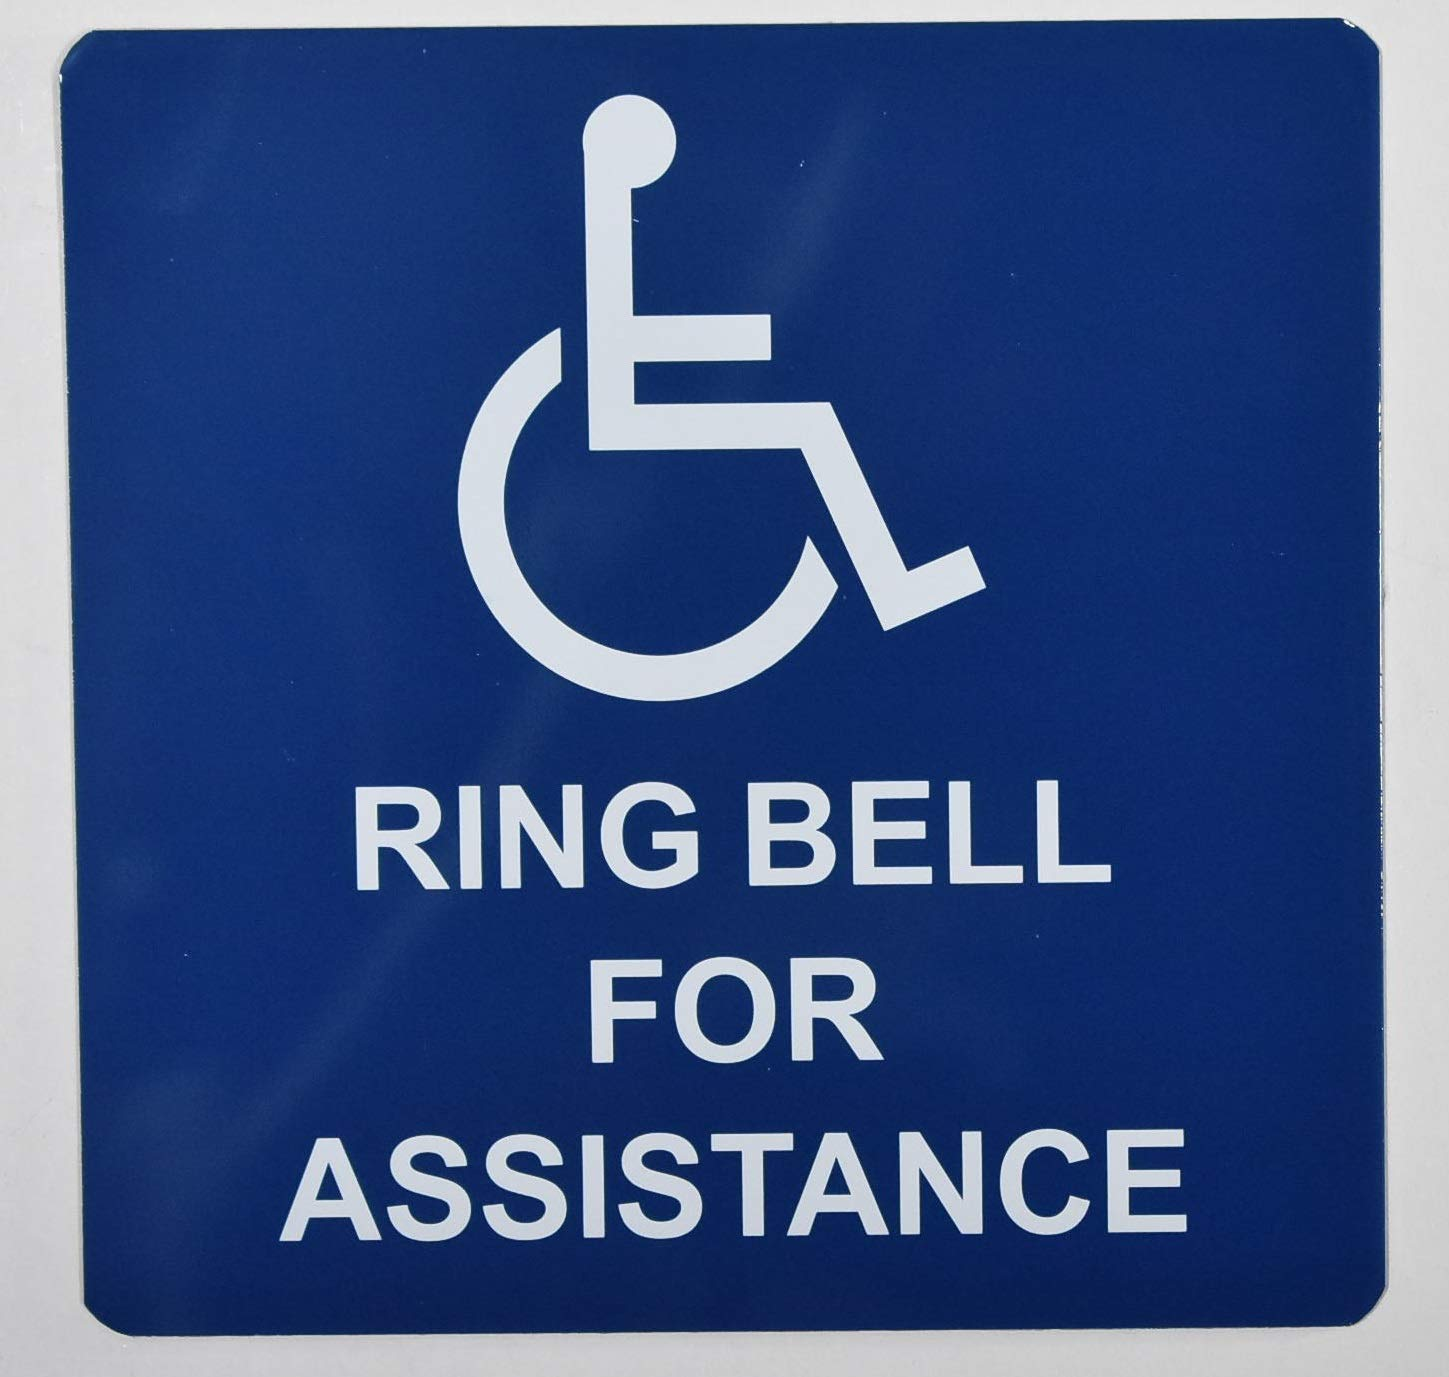 ADA Access Ring Bell for Assistance Sign White//Blue,Aluminium, 6x6, Double Sided Tape -The Pour Tous Blue LINE